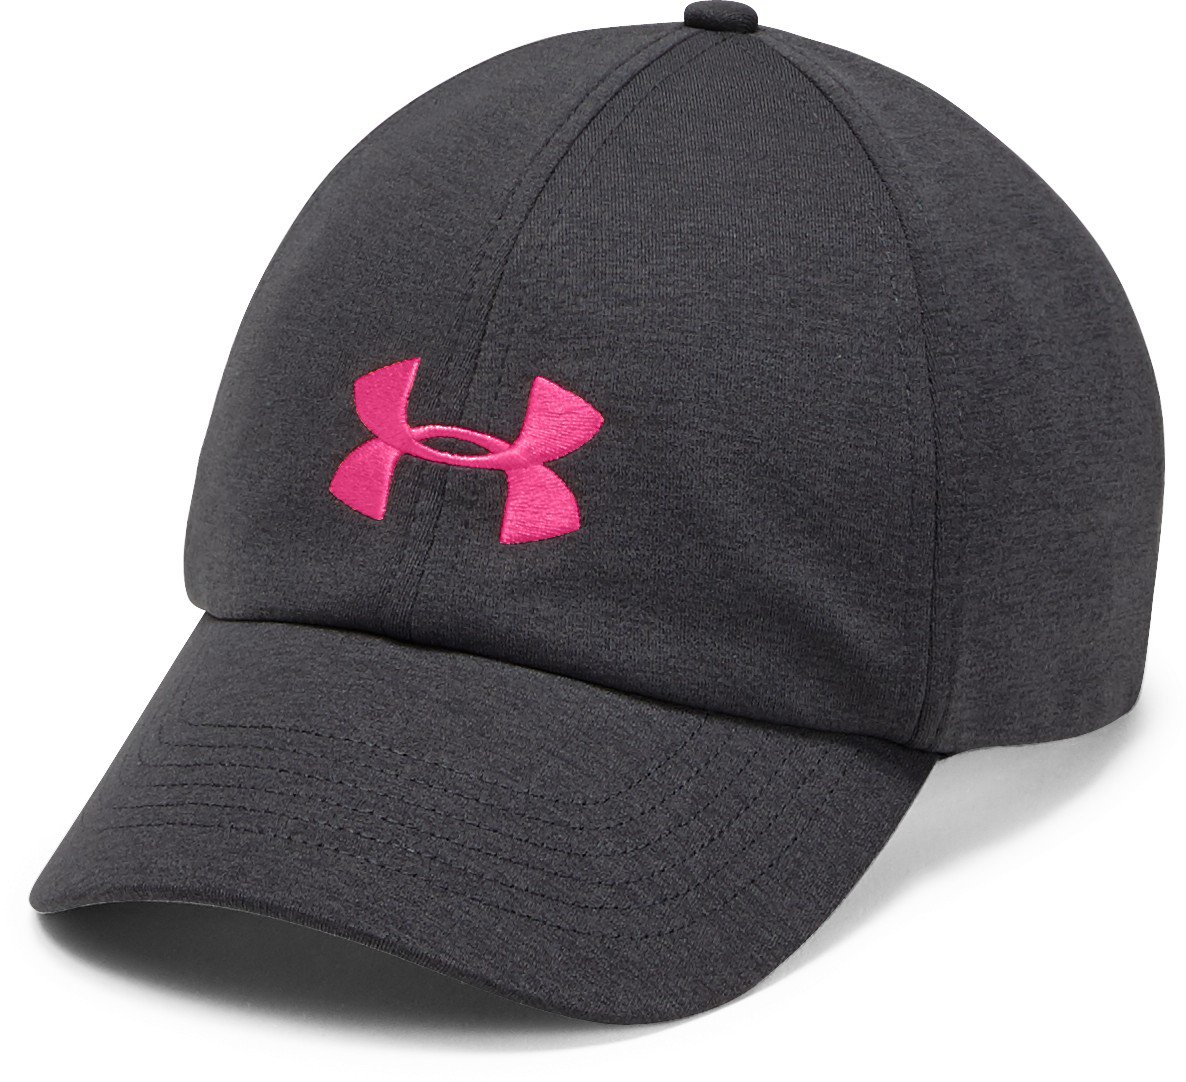 58e9c8f267b Under Armour Women s Renegade Training Cap